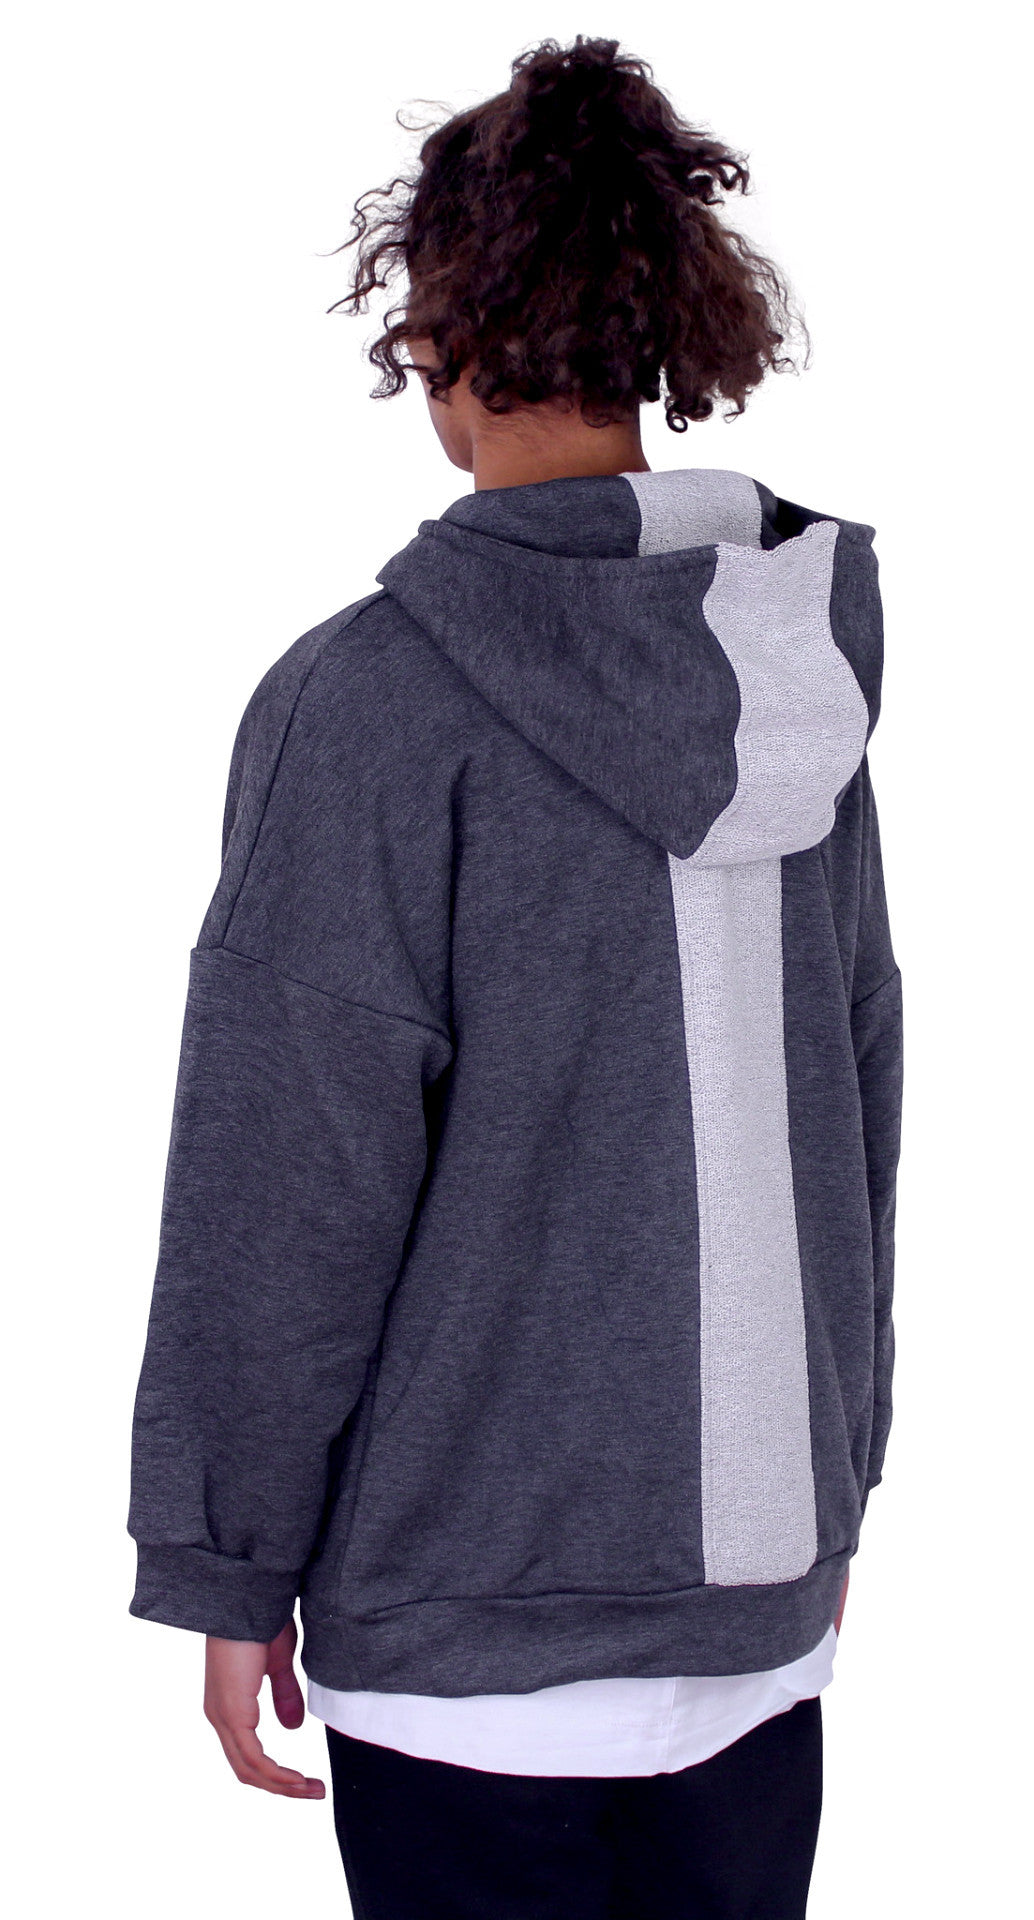 REVERSED BACK PANEL HOODIE - ASH WHITE